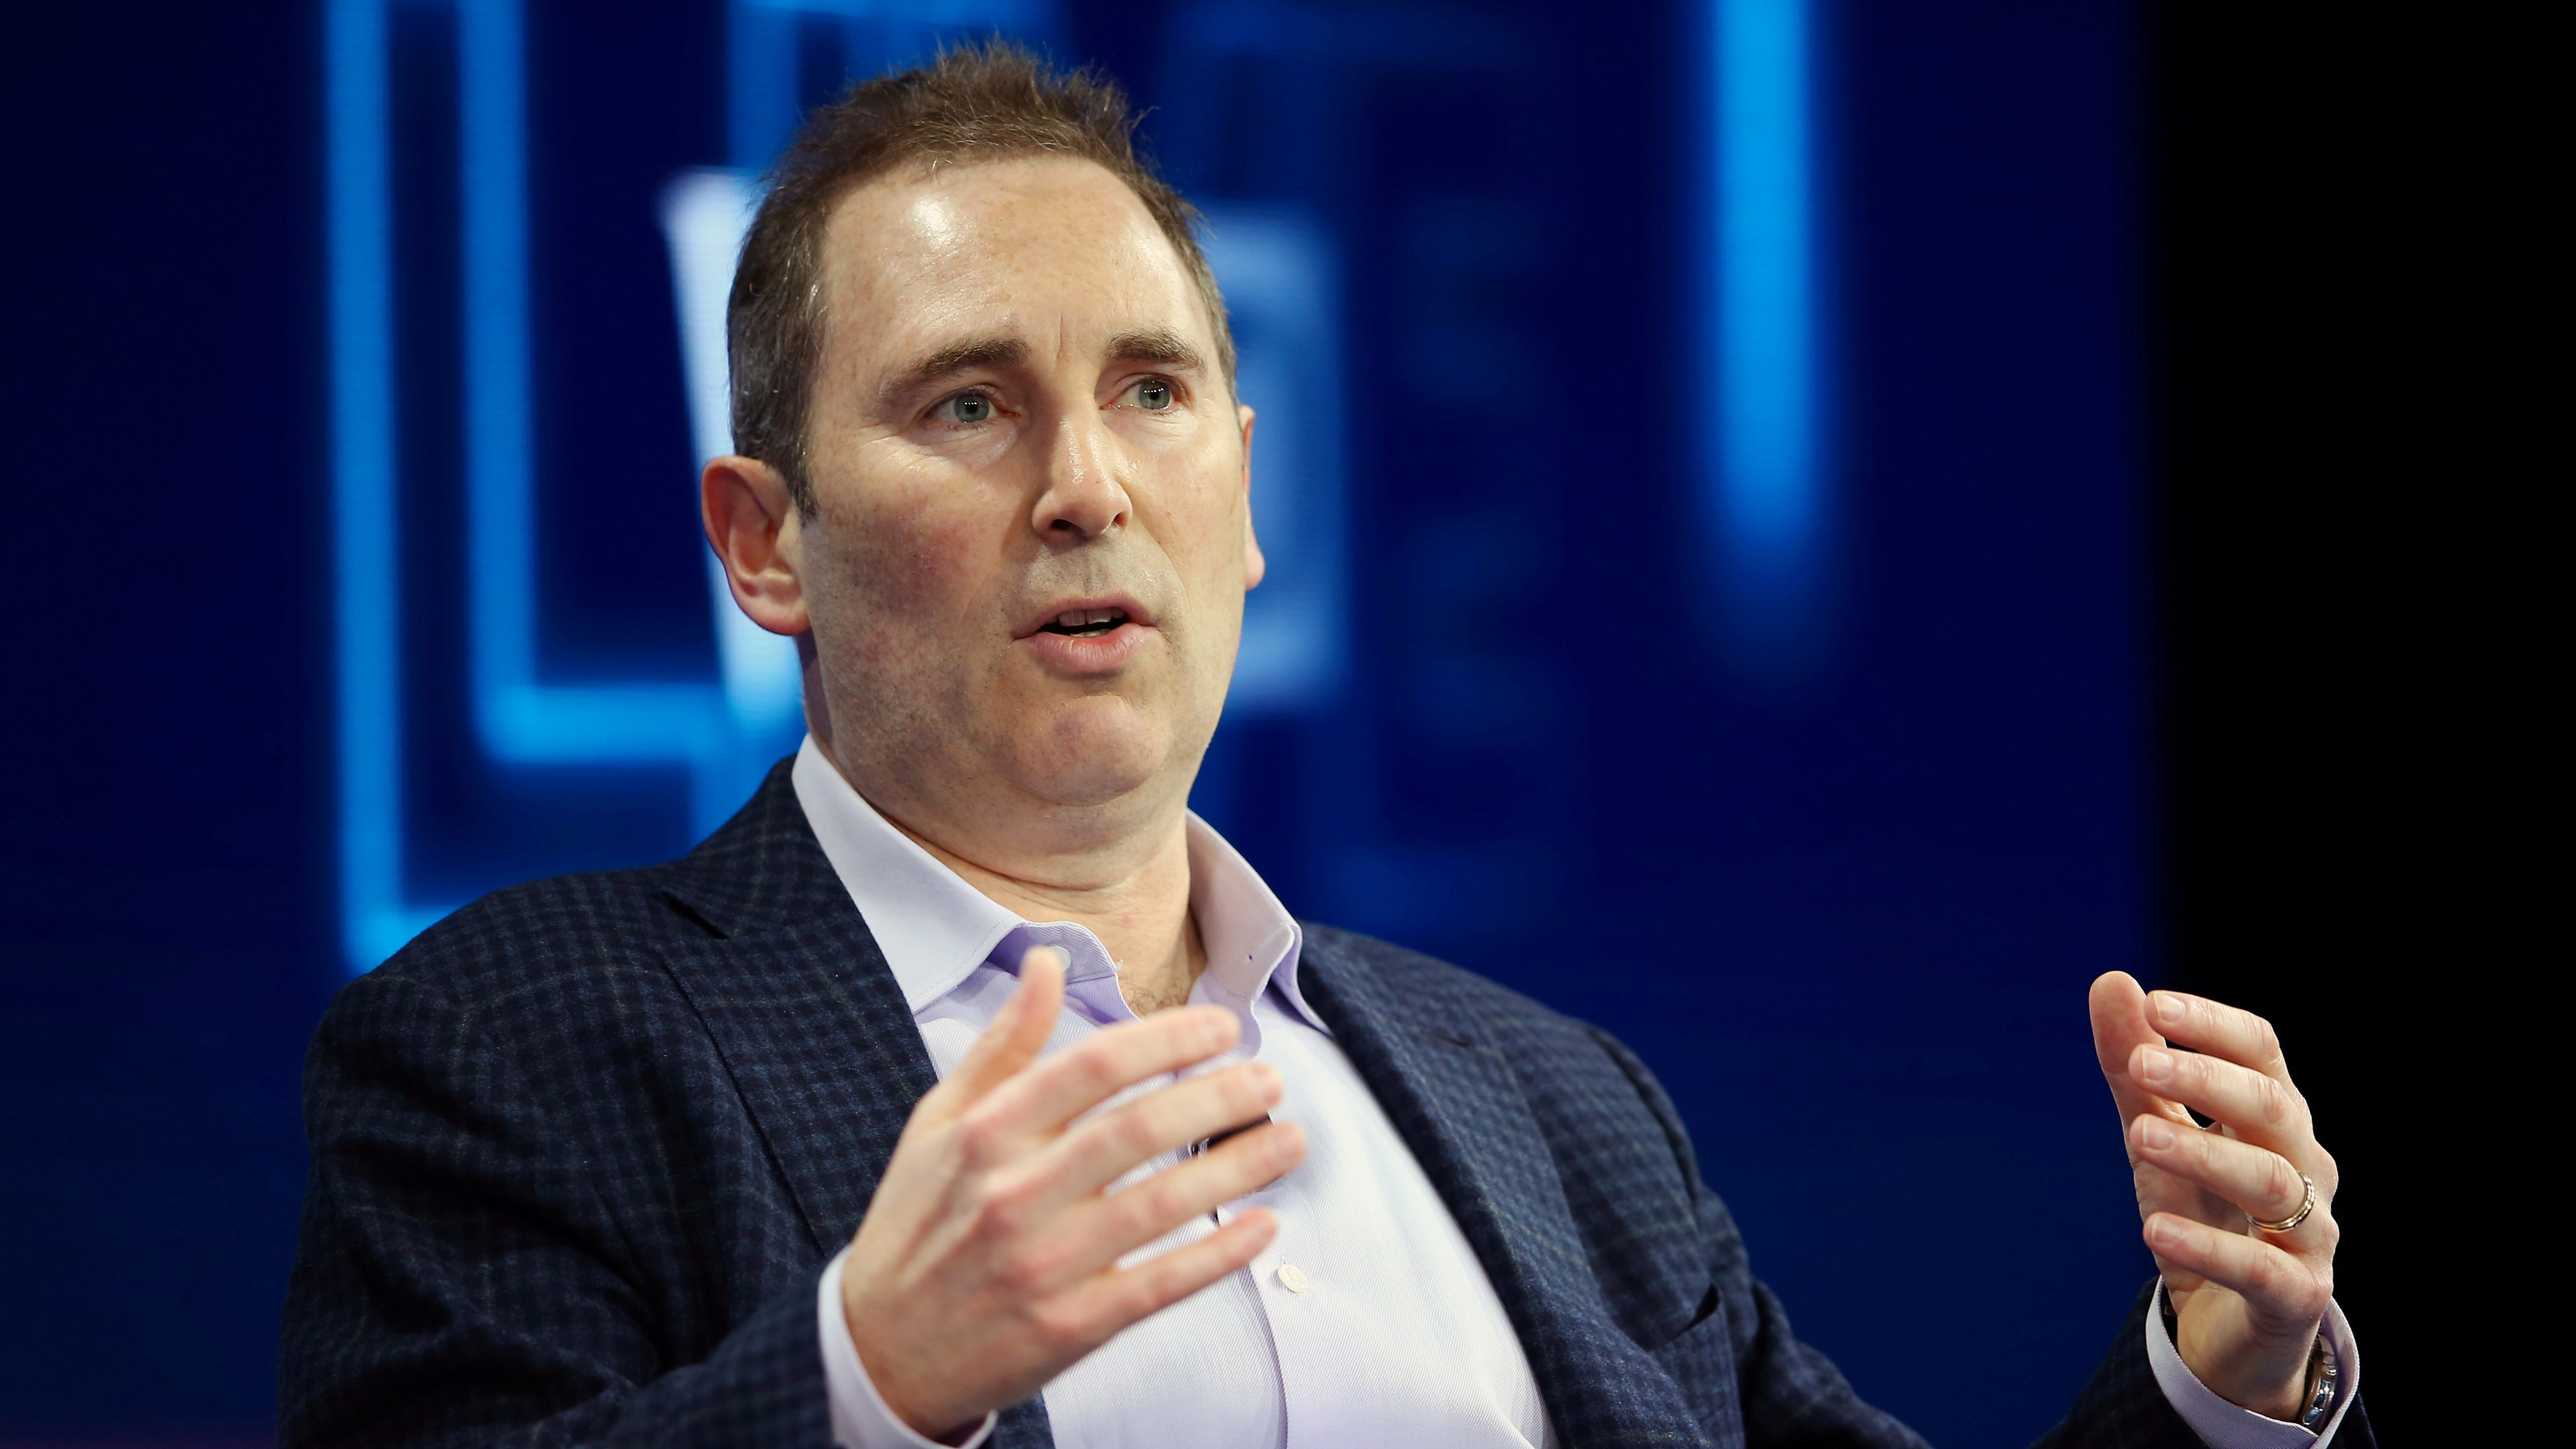 Andy Jassy, CEO Amazon Web Services, speaks at a conference